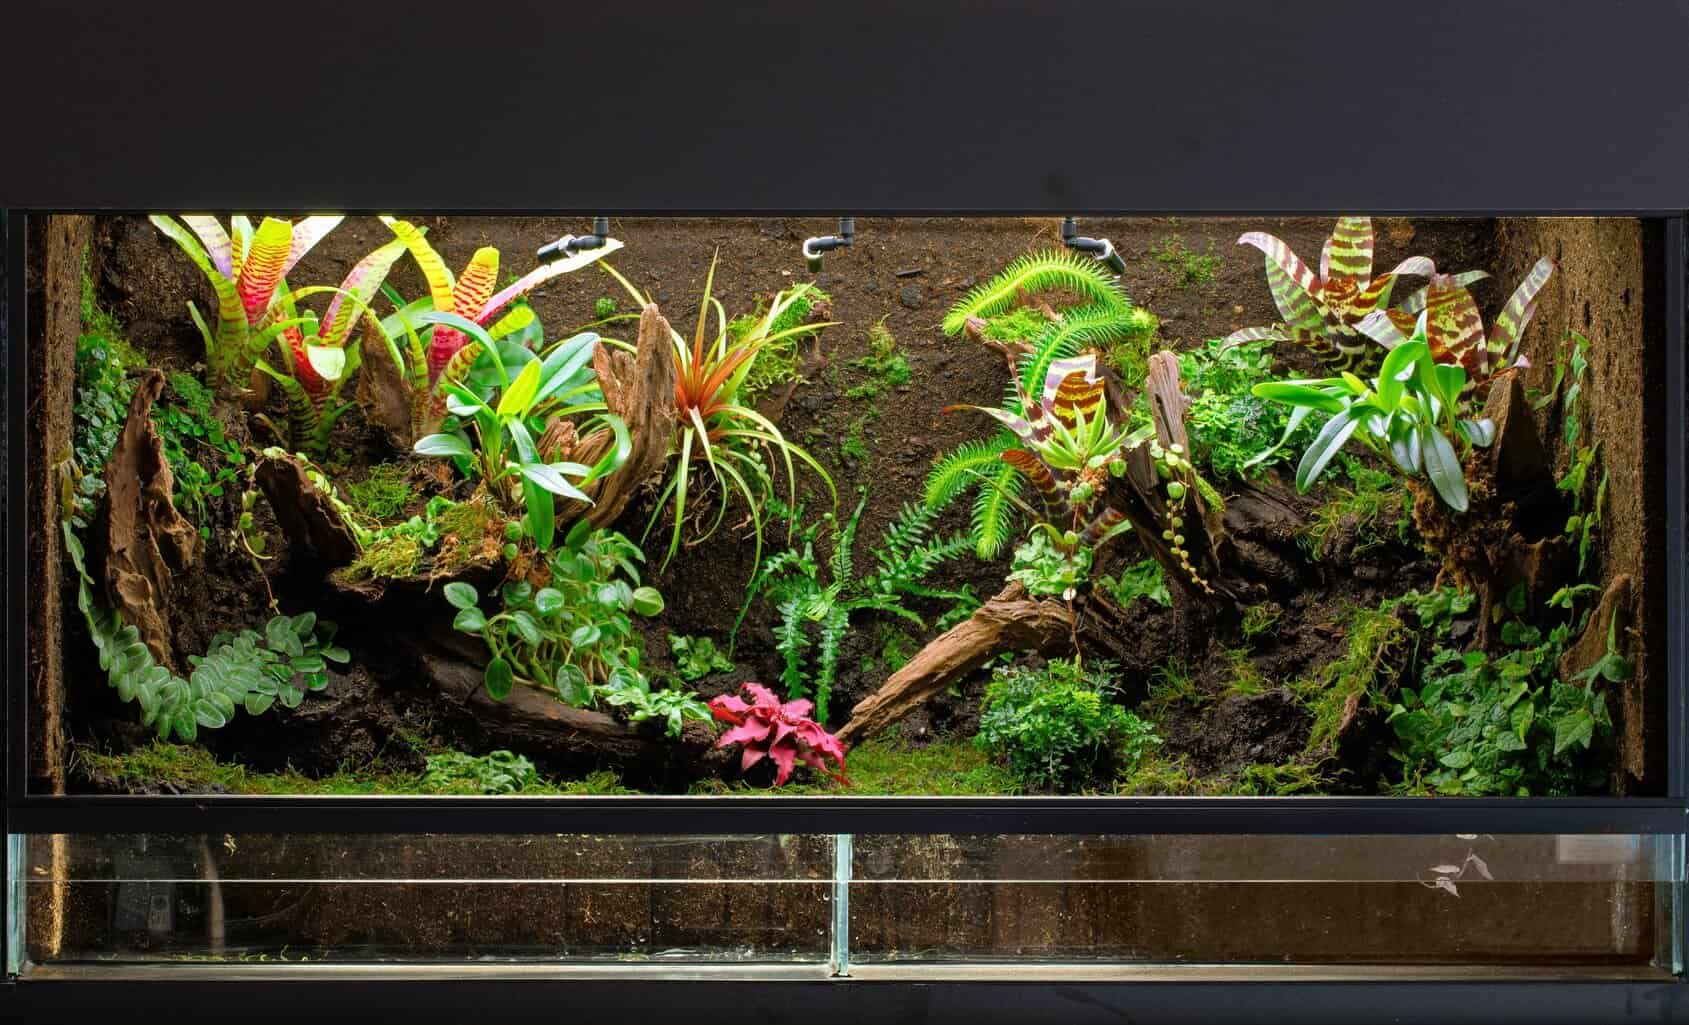 The Definitive Guide To Creating A Paludarium Tank Plants And Building Suggestions Fishkeeping World